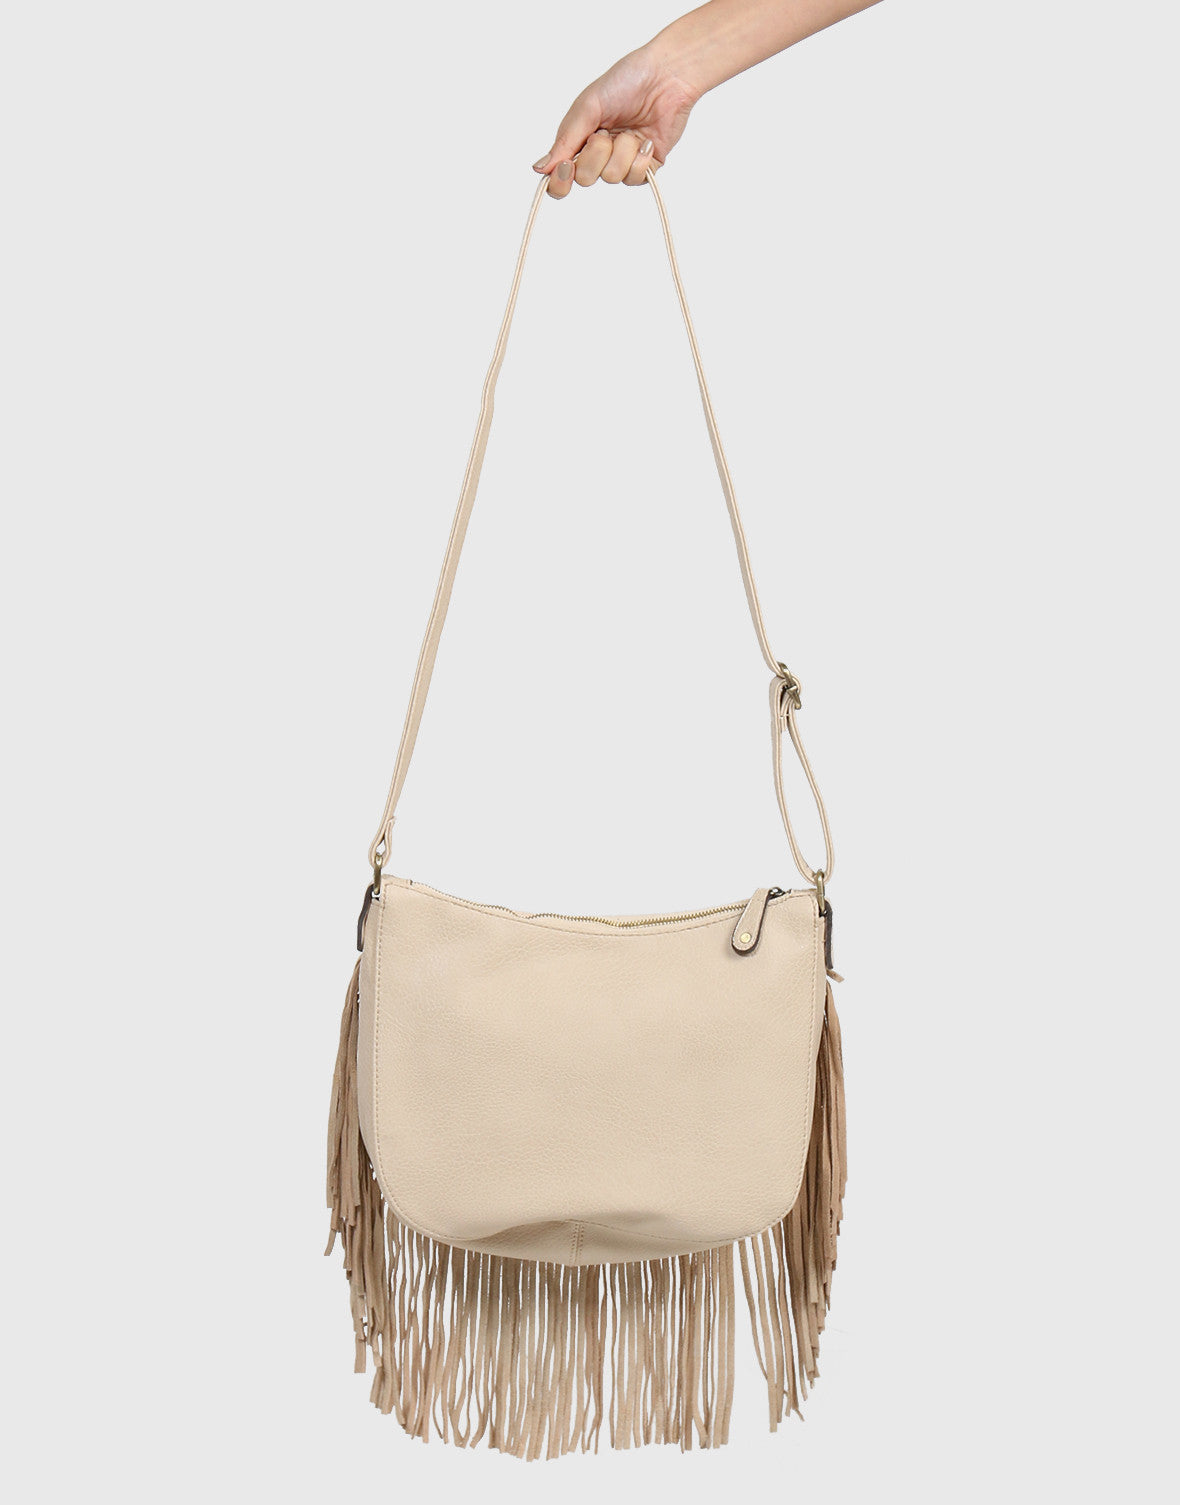 Crossbody Studded Fringe Bag - Cream